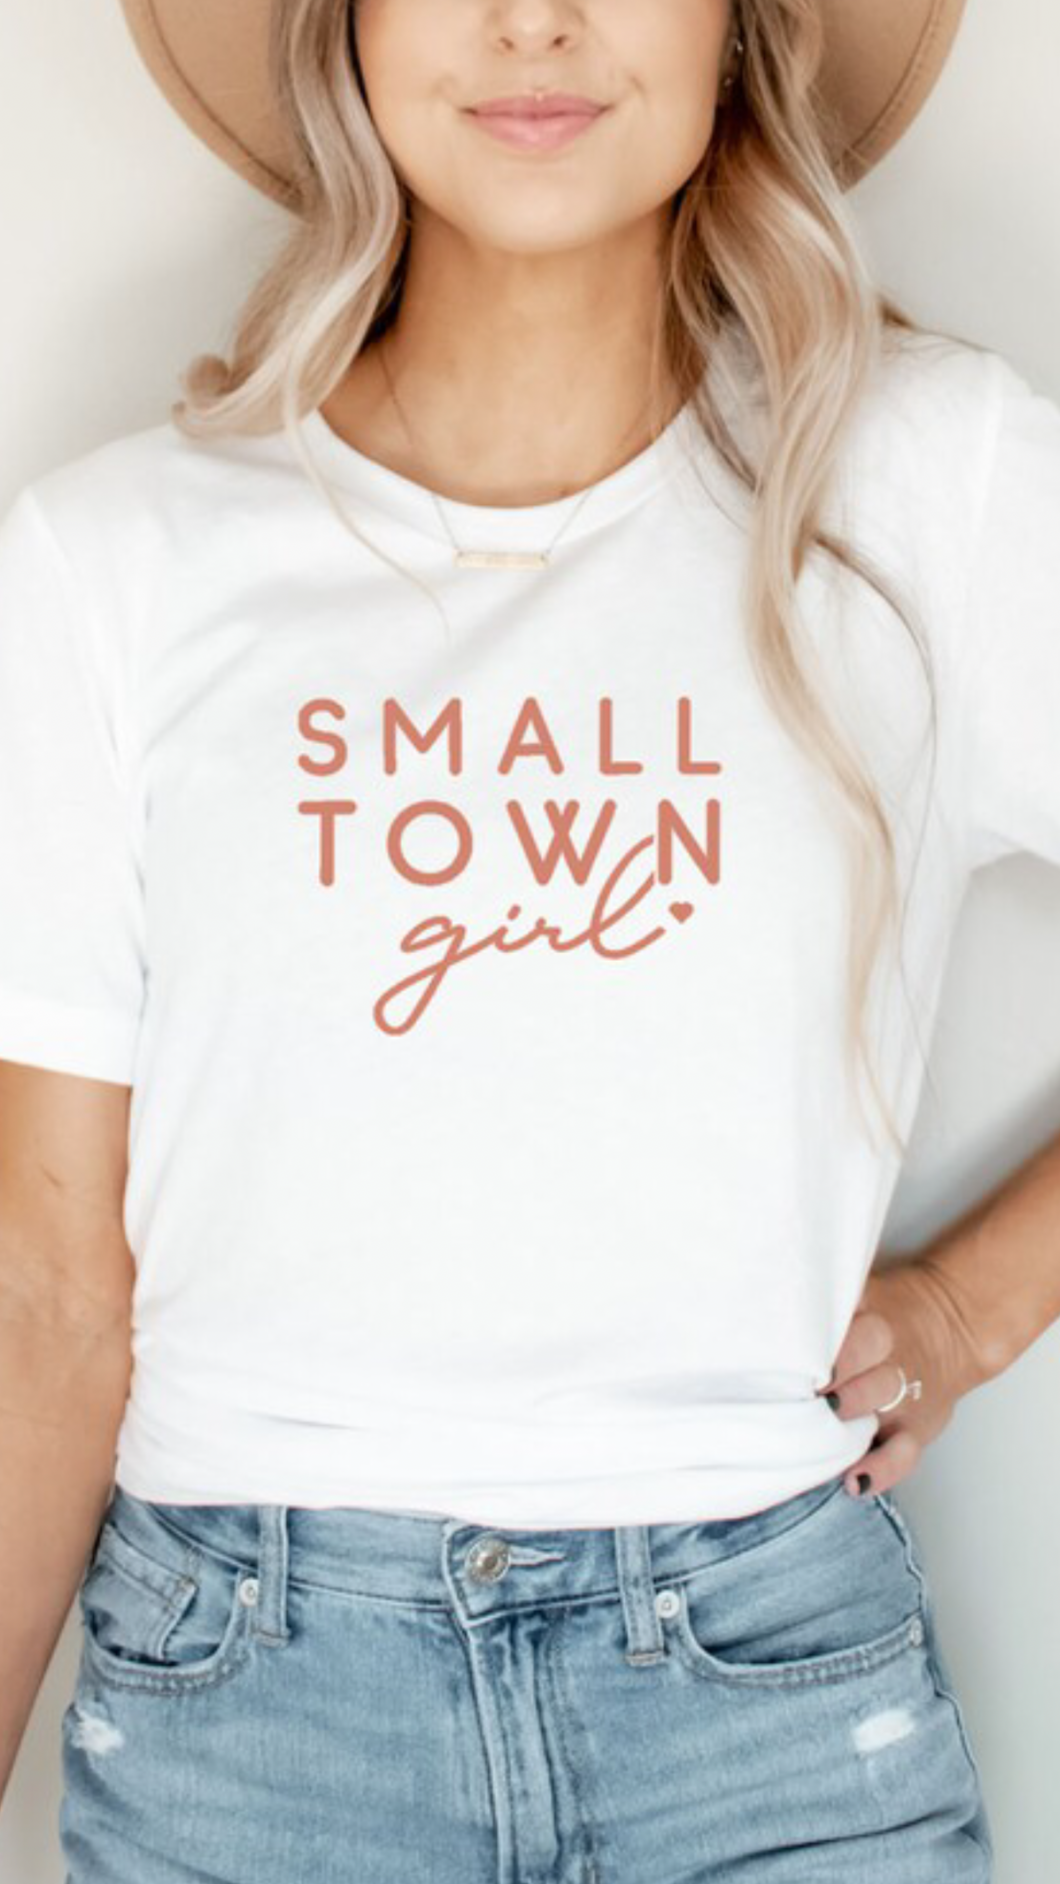 Small Town Girl Soft T-Shirt